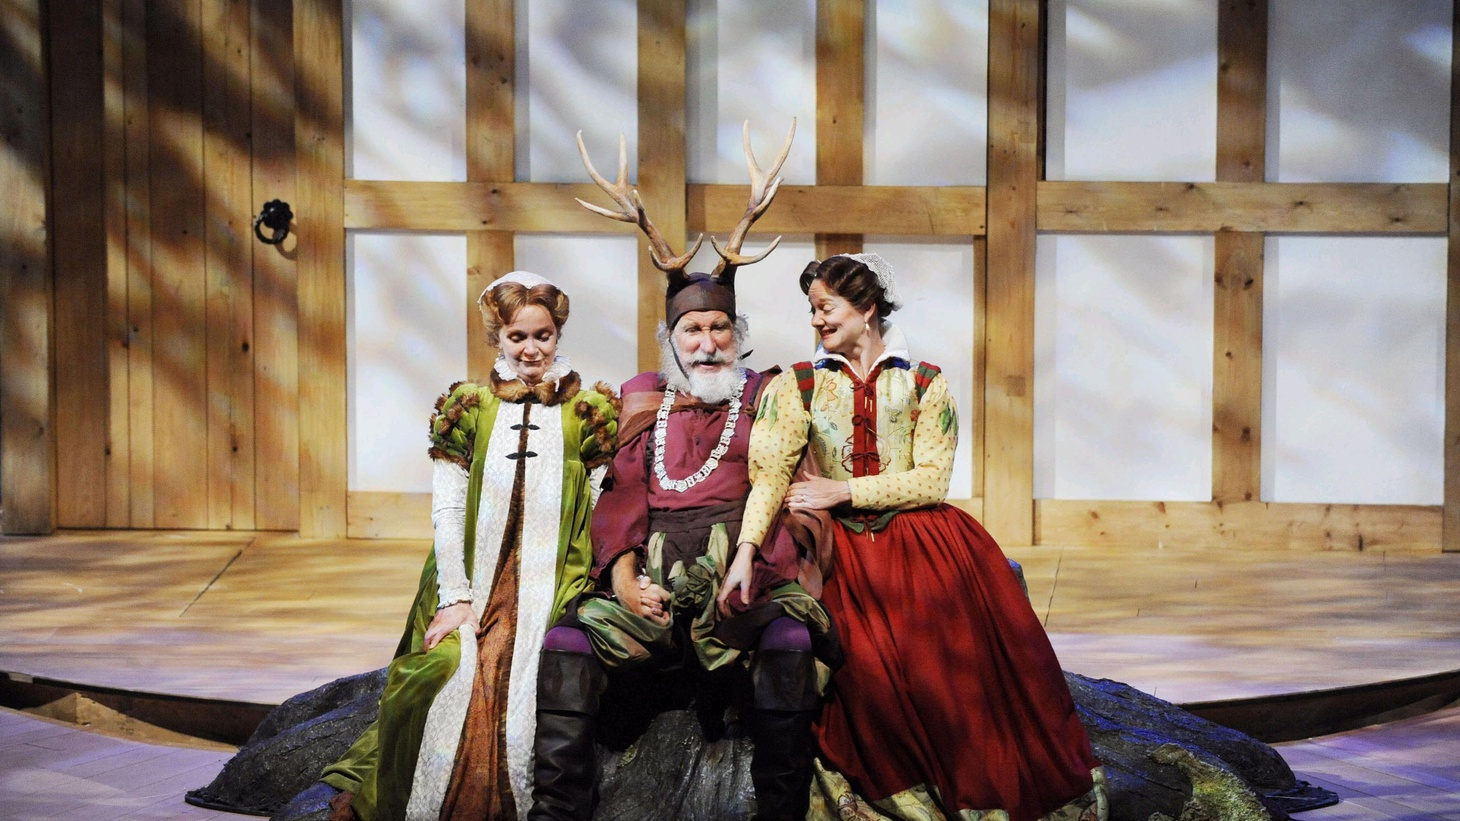 I am about to say something for which I expect to be pilloried: Not all of Shakespeare's plays are great. There, I said it. Take The Merry Wives of Windsor playing this week at the Broad Stage in Santa Monica. This isn't the Shakespeare of deep human insight or political intrigue 